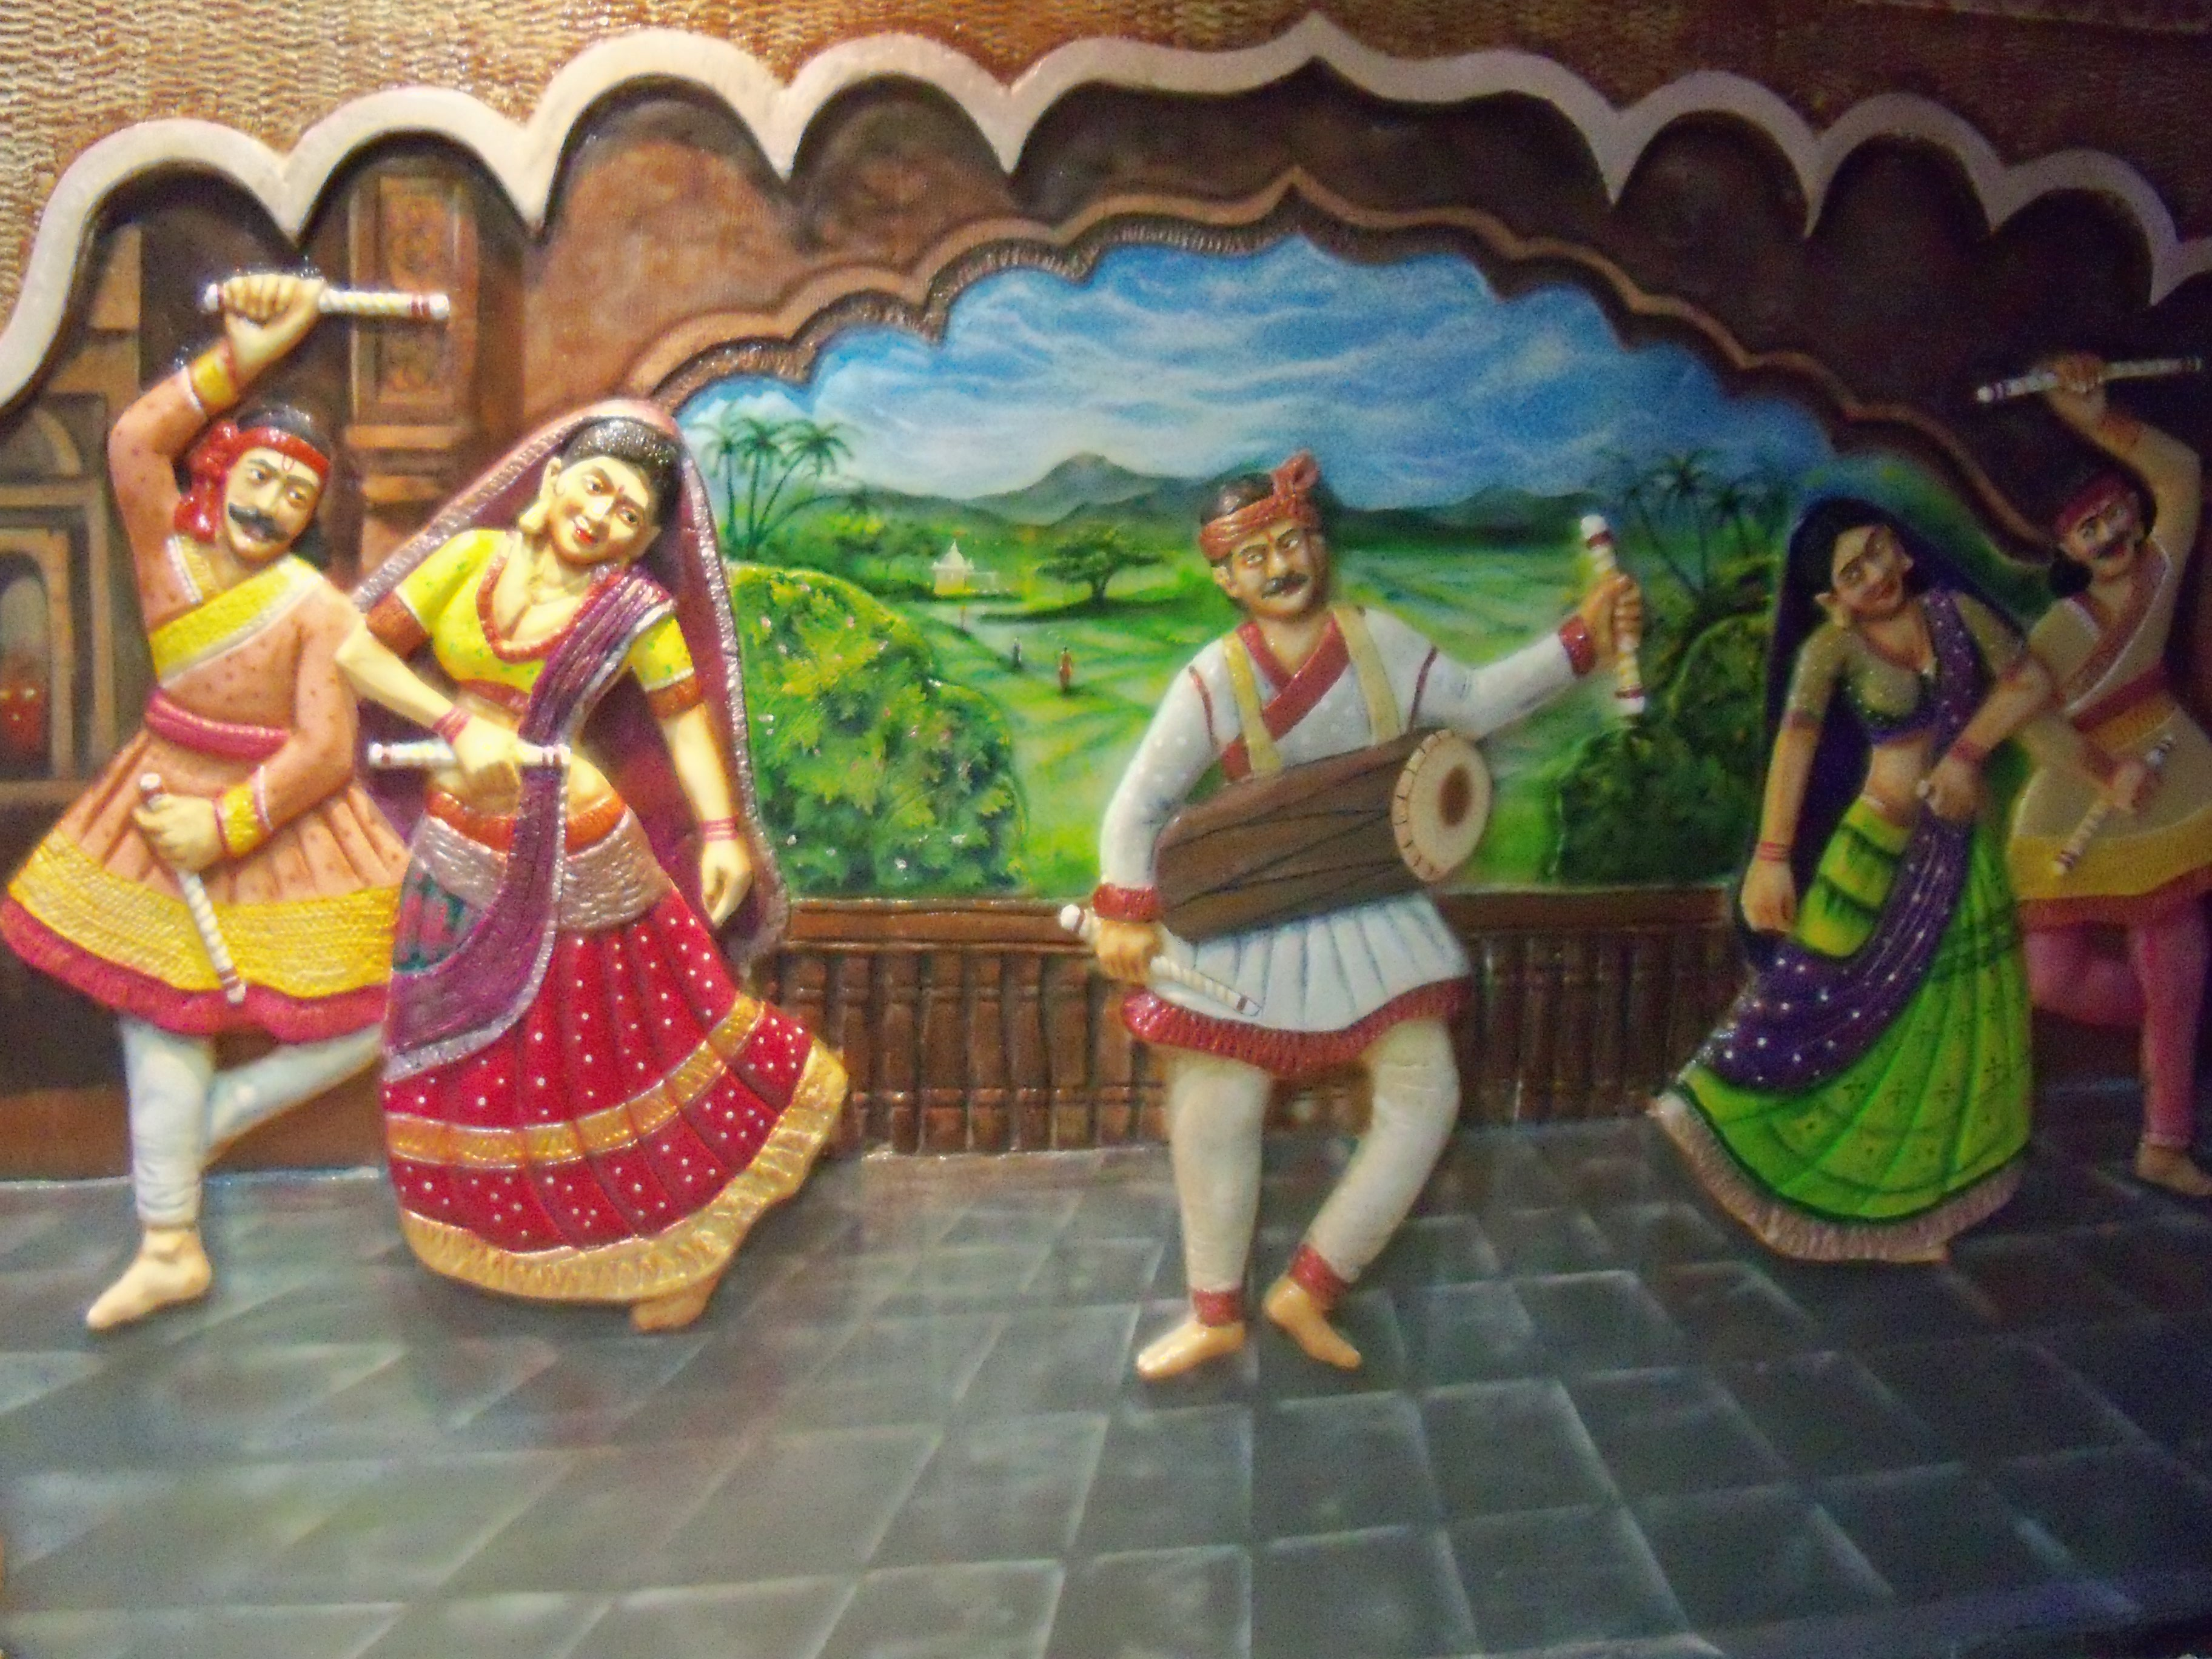 big art business pvt company undertaking art job works big our company big art business pvt is one of the leading company selling paintings art and craft material we have a team of professional artists in